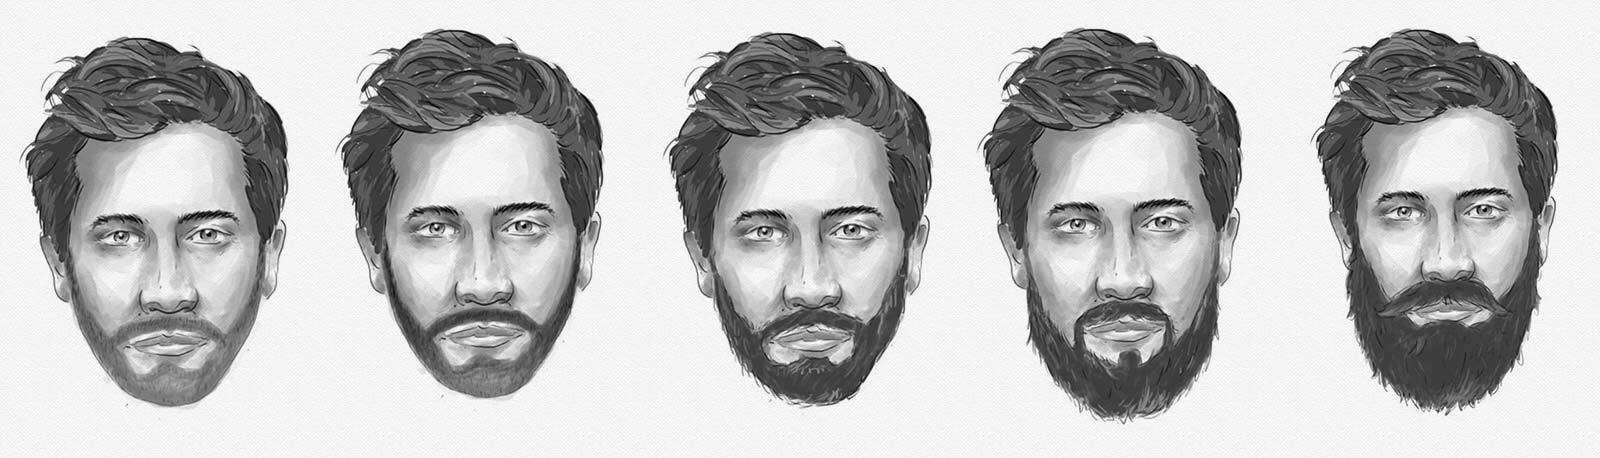 Beard Styles Choosing The Right Facial Hair Style In 2019 Brave